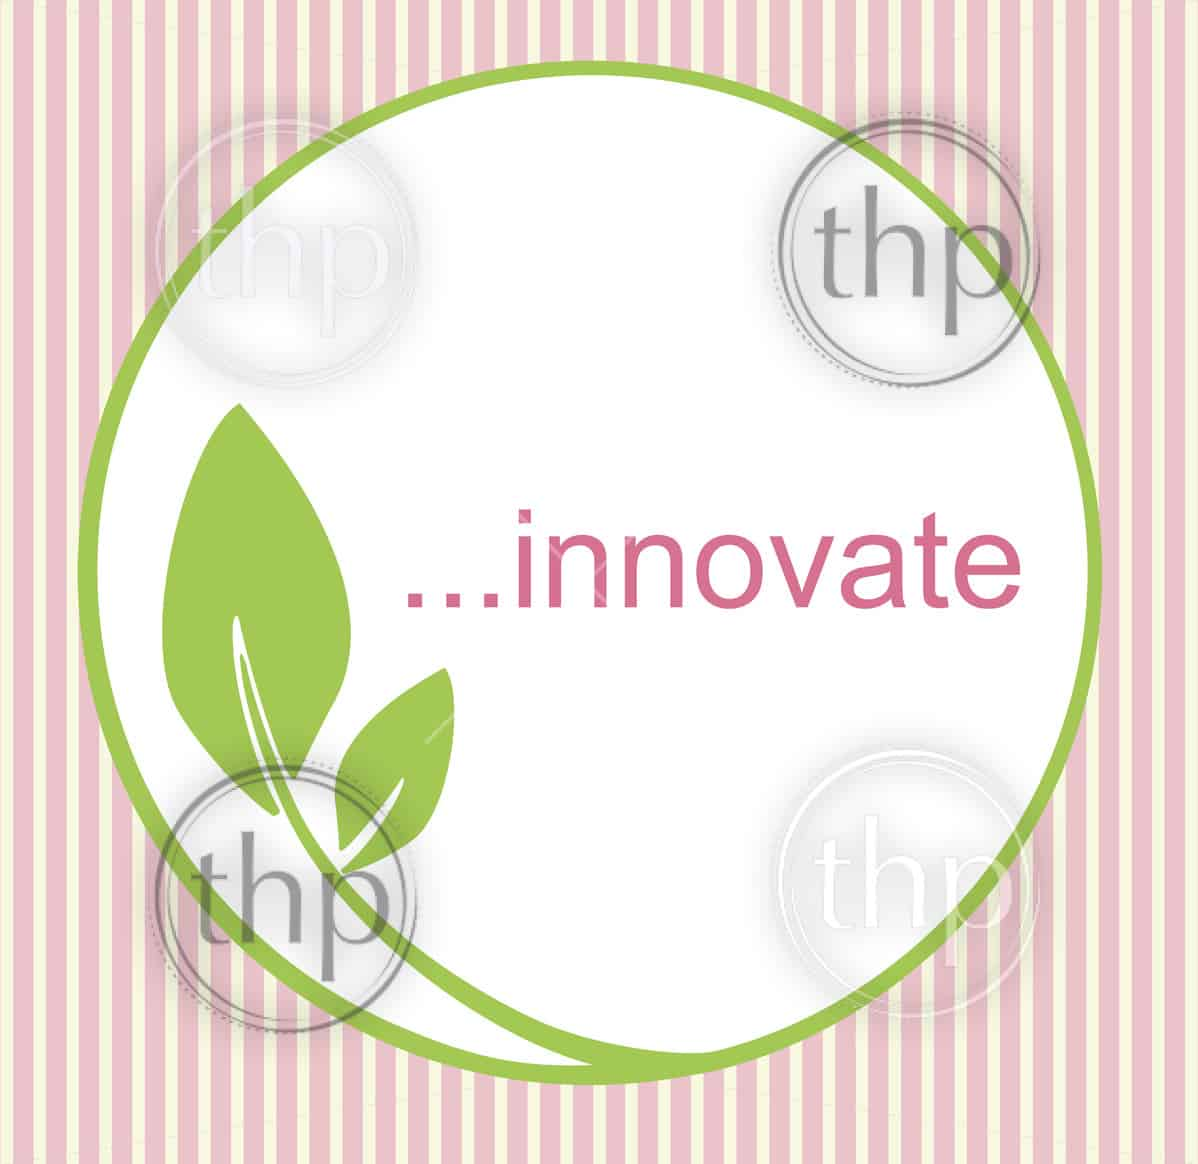 Fresh innovative logo with green circle and leaf, creating an organic, natural feel